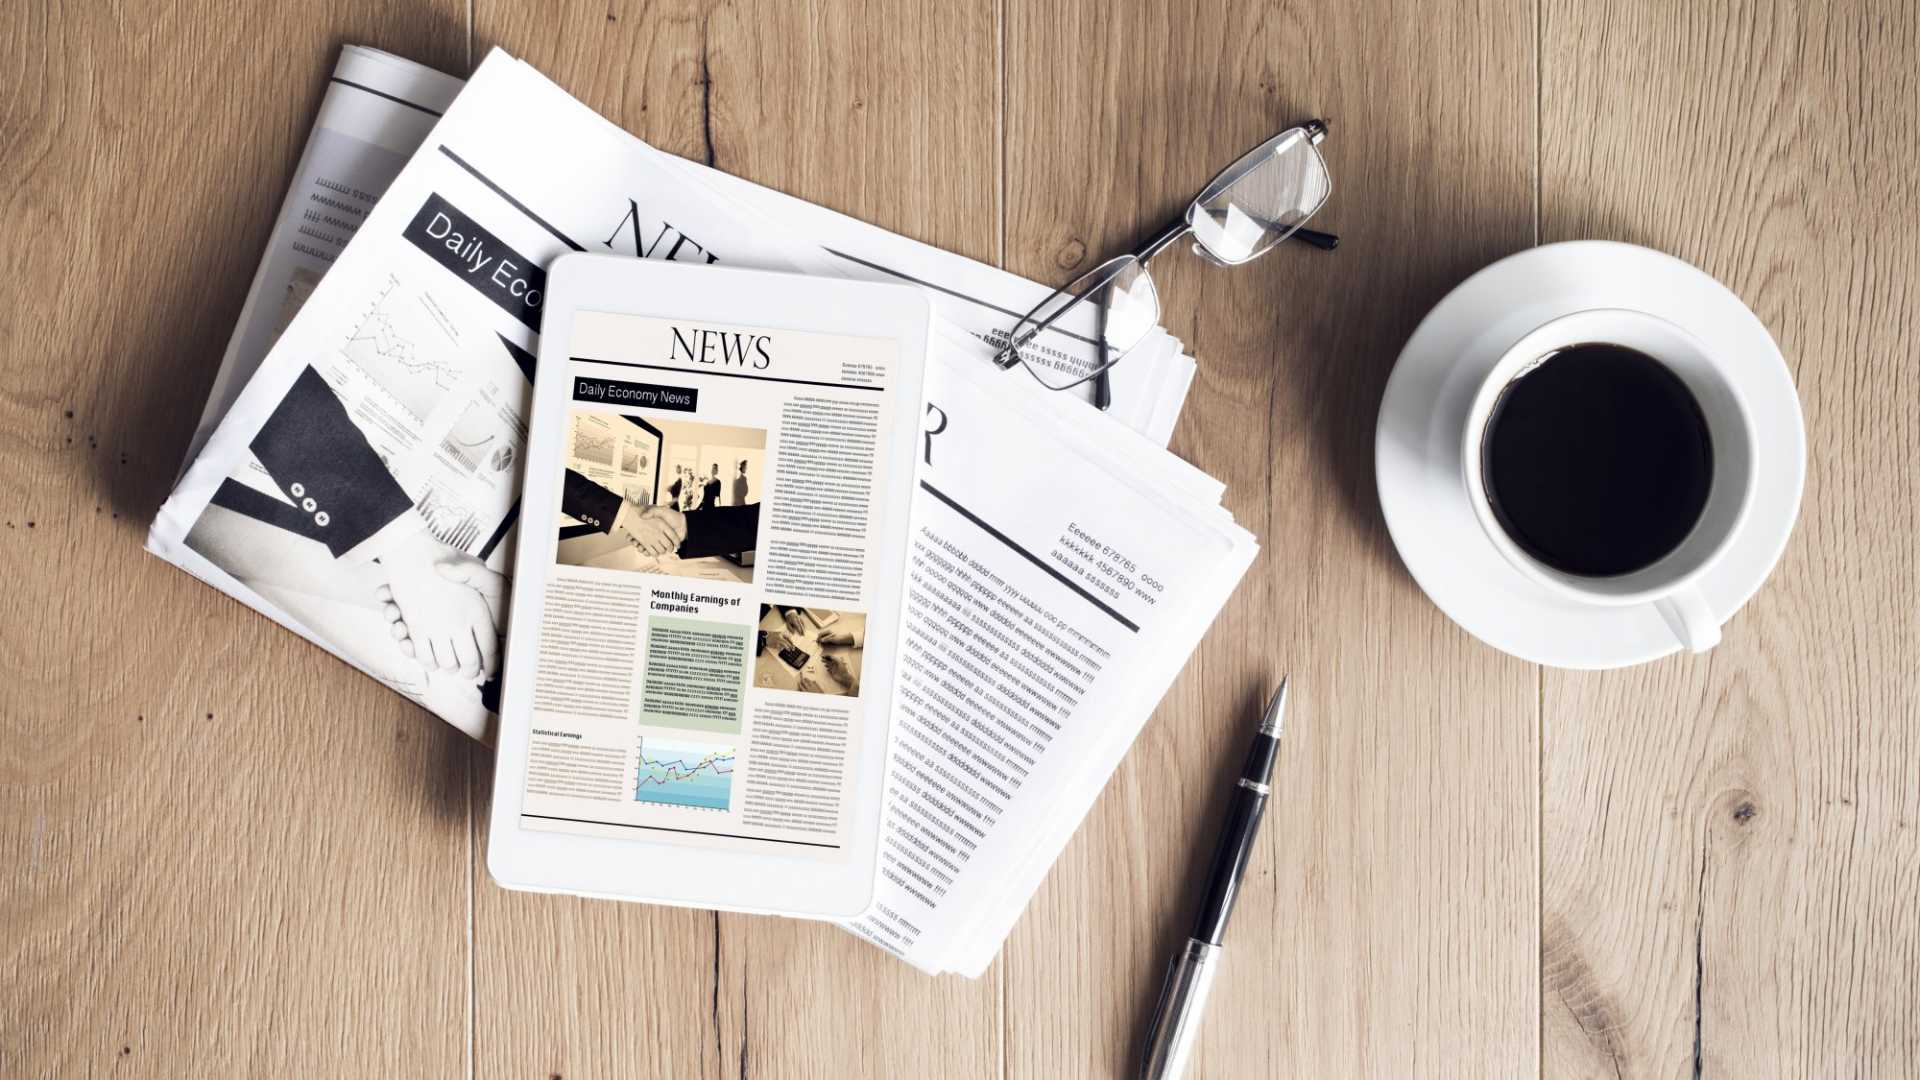 Need Media Coverage But Can't Afford a Public Relations Team? Try These 6 Tips